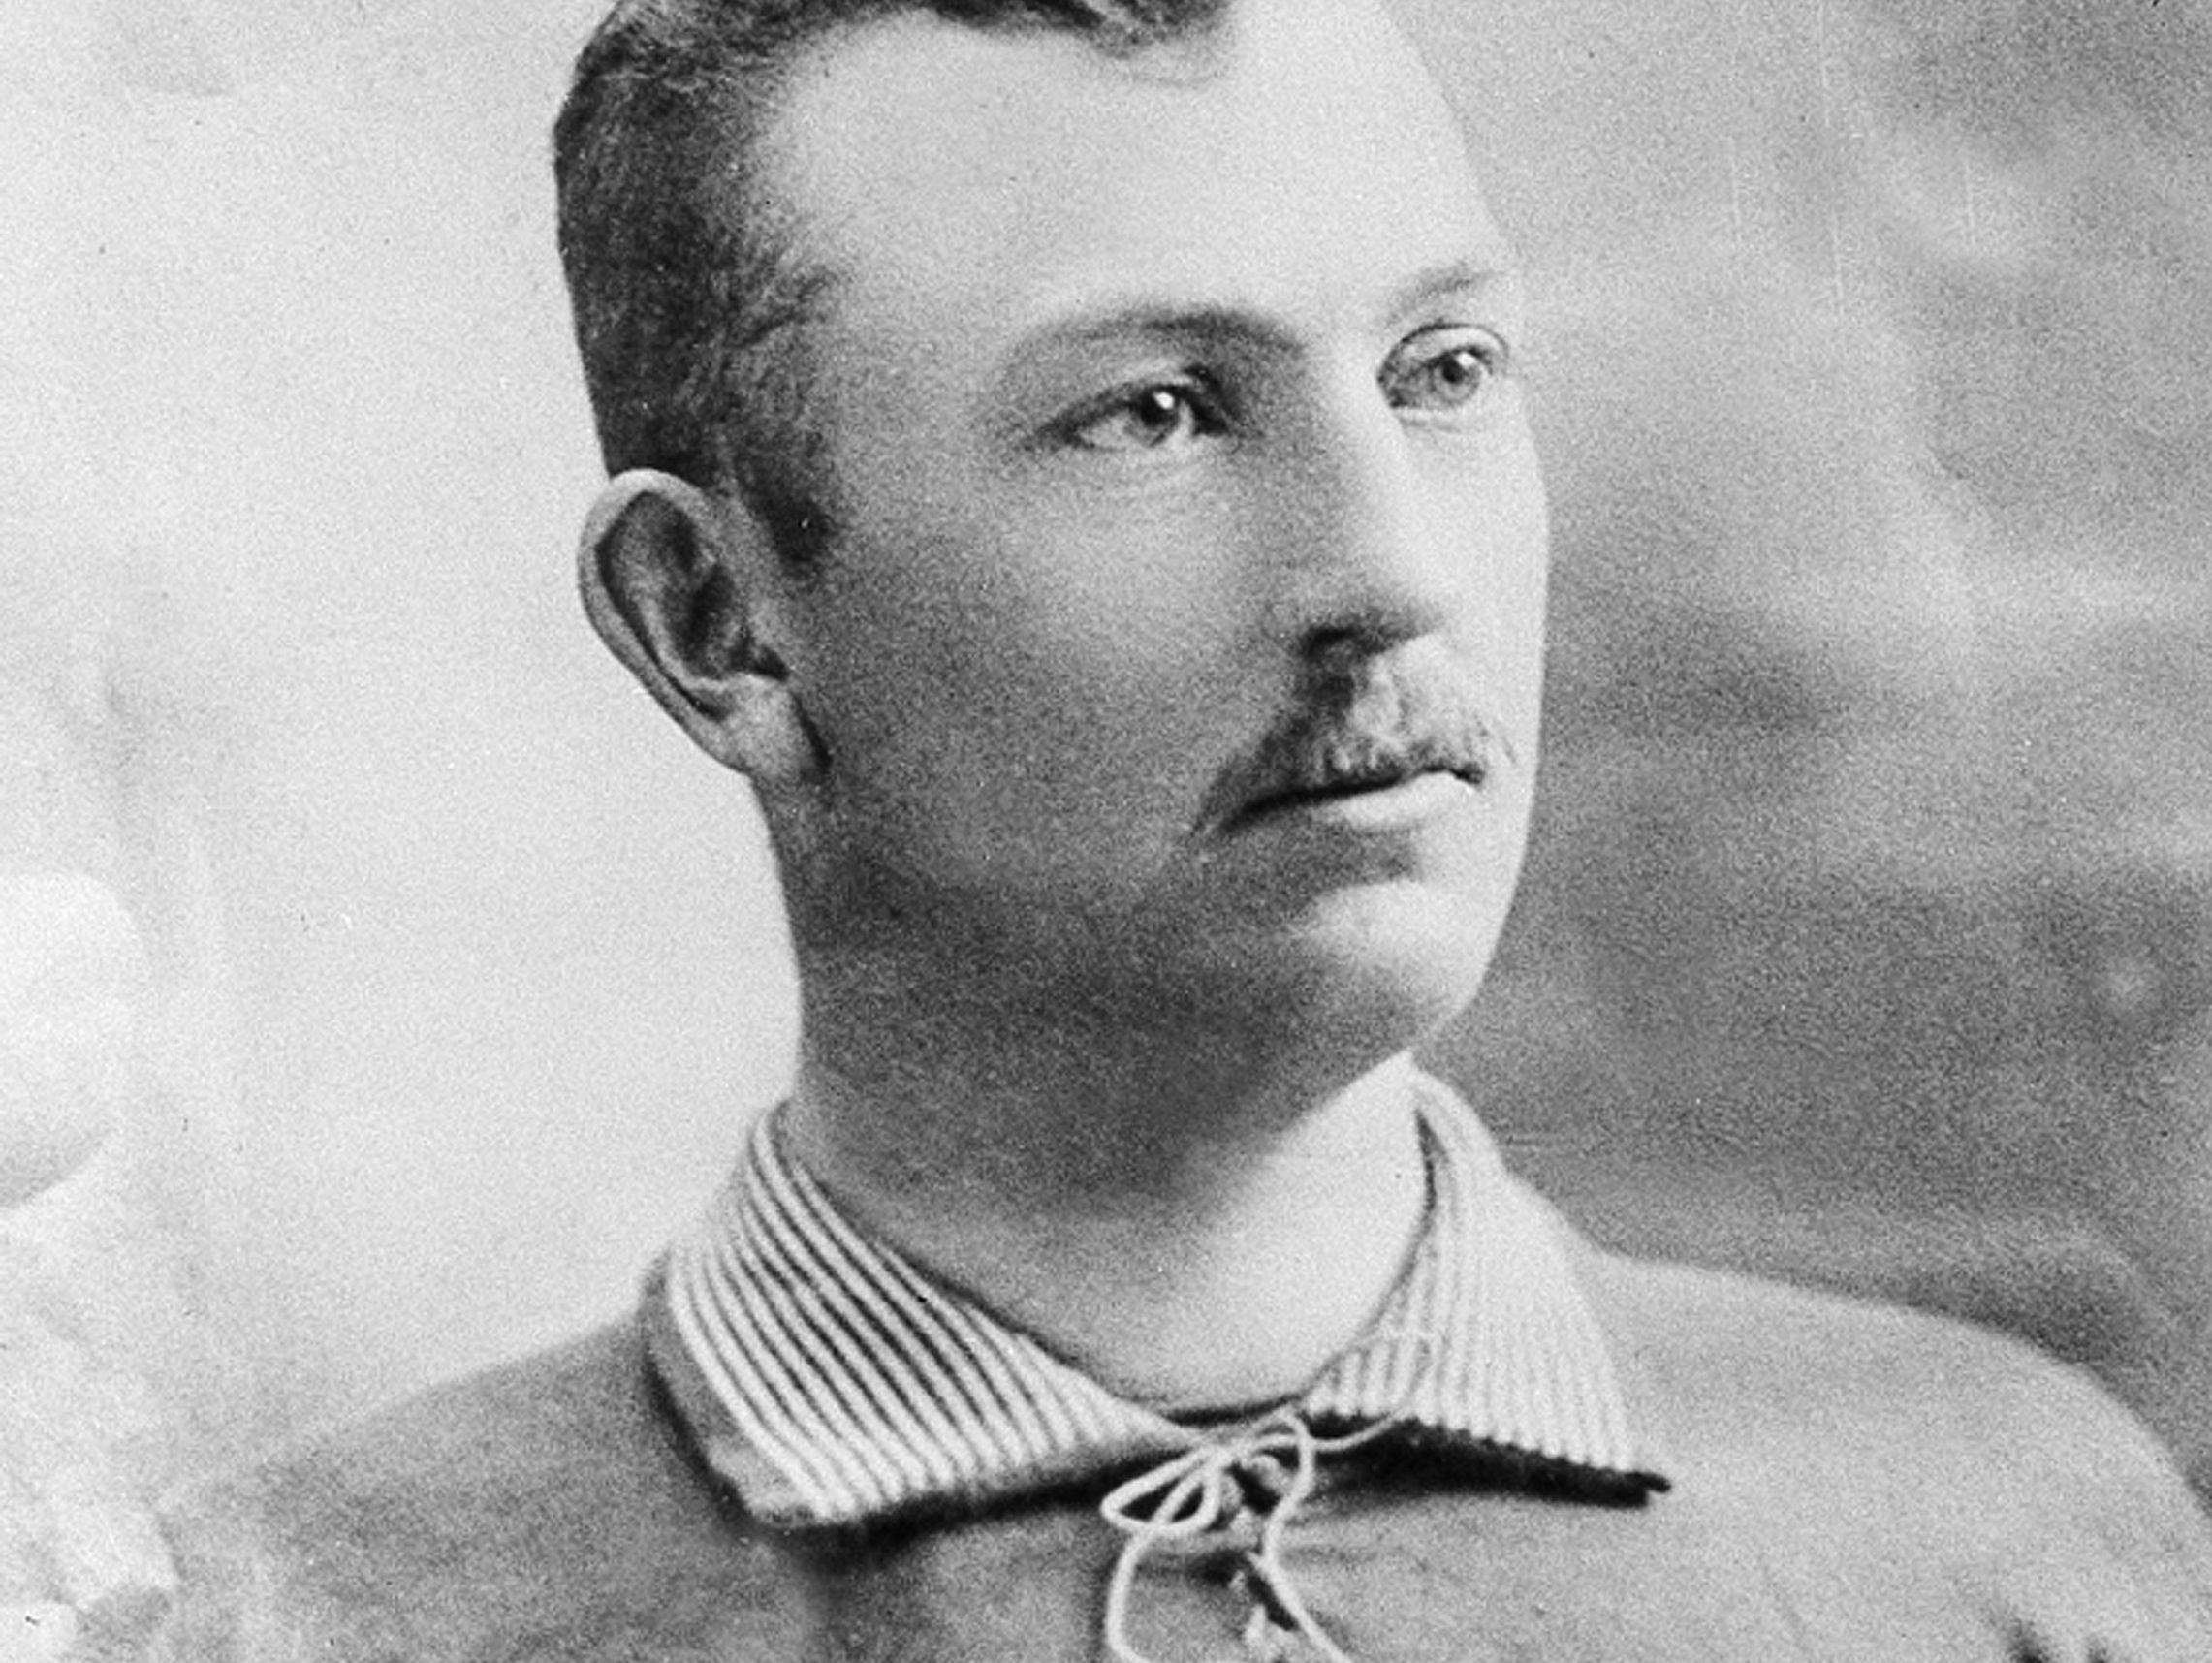 Cleveland Indians pitcher Cy Young poses in this undated photo at an unknown location. Young made his major league debut in 1890 and pitched for five teams during his 22-year career. The right-hand pitcher, winner of more major league games than any other pitcher, threw 749 complete games and won 511 games, both records. Young was elected into the Baseball Hall of Fame in 1937. He was born in 1867 and died in 1955. The Cy Young Award was created in 1956 to honor the best major league pitcher annually.